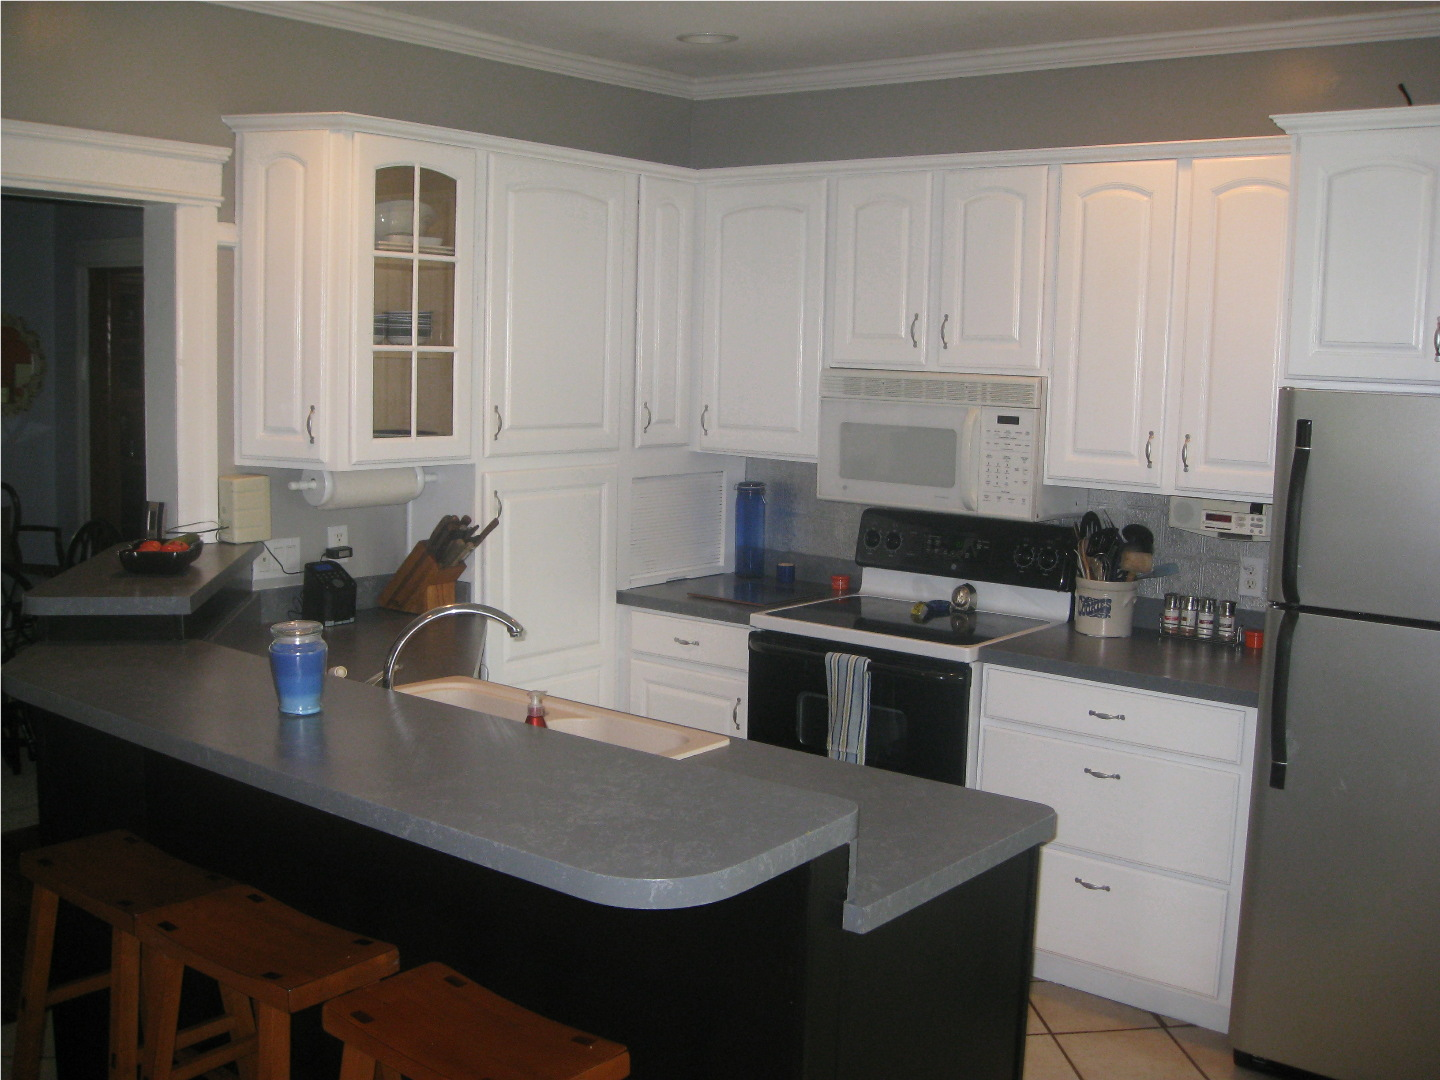 Kammy's Korner: Painted Kitchen Counter Tops?!